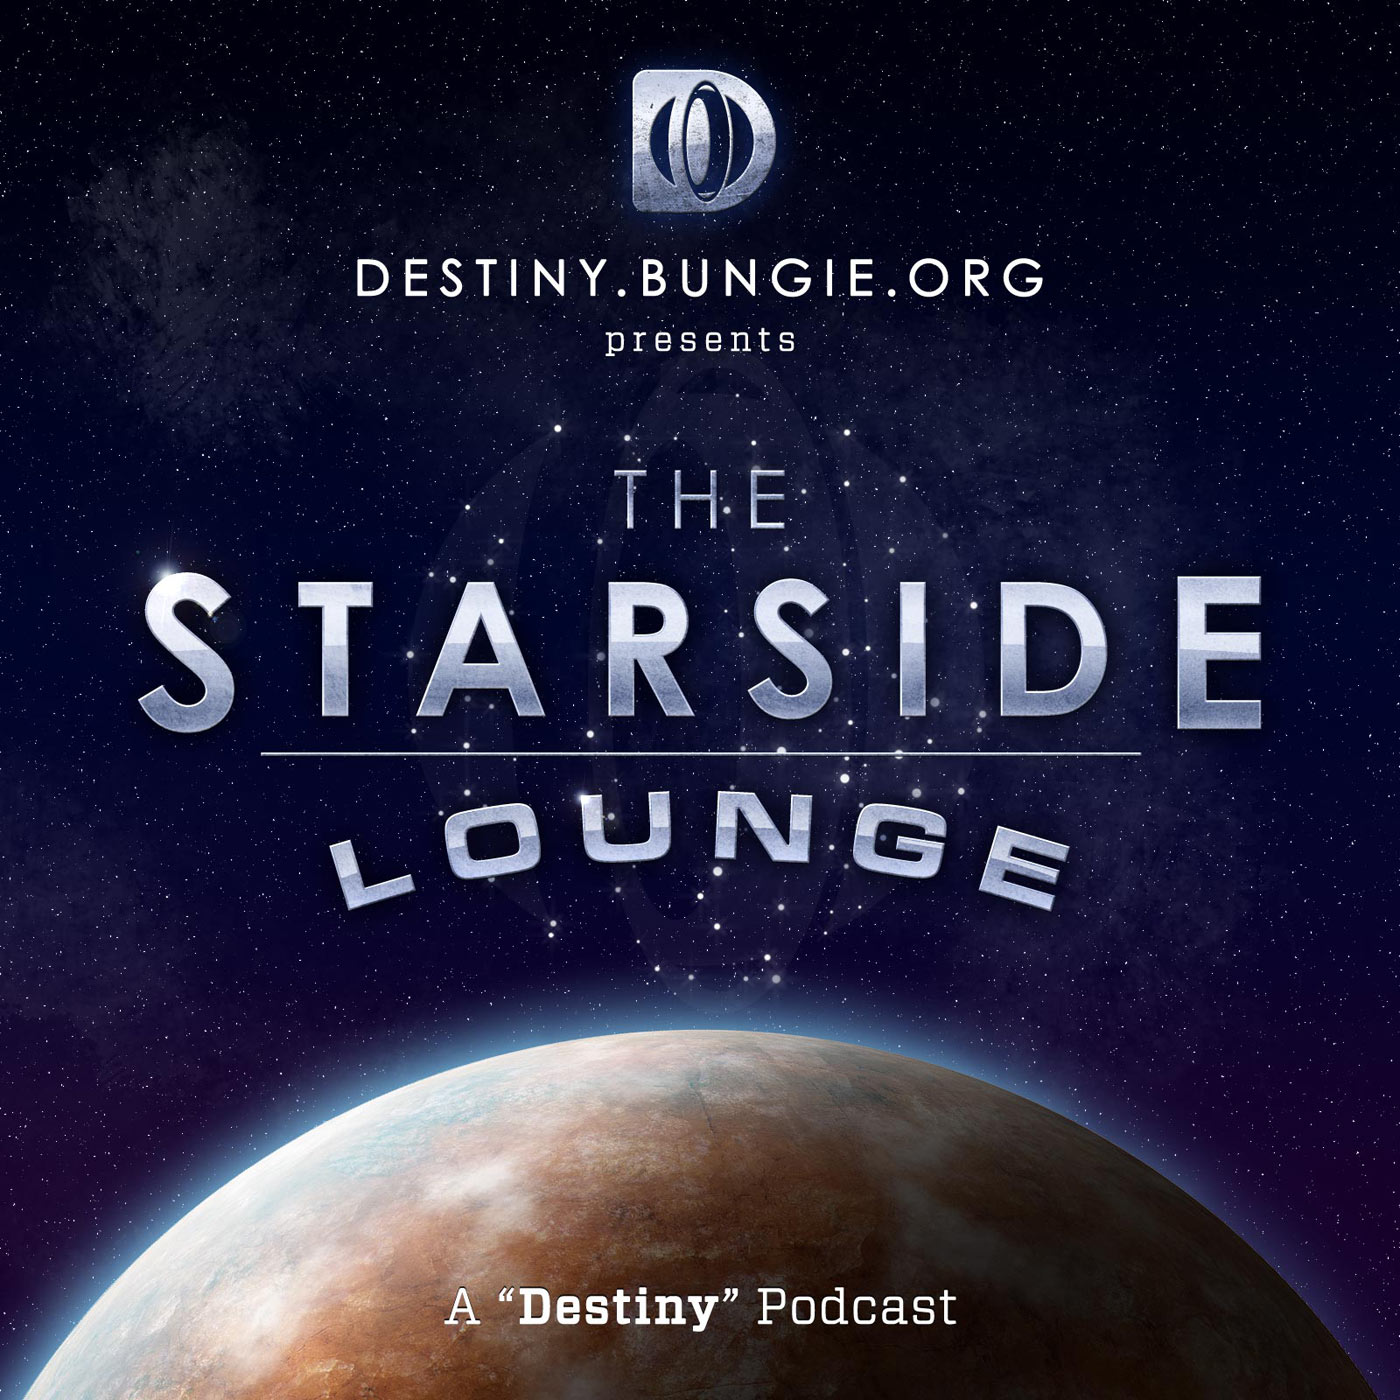 The Starside Lounge